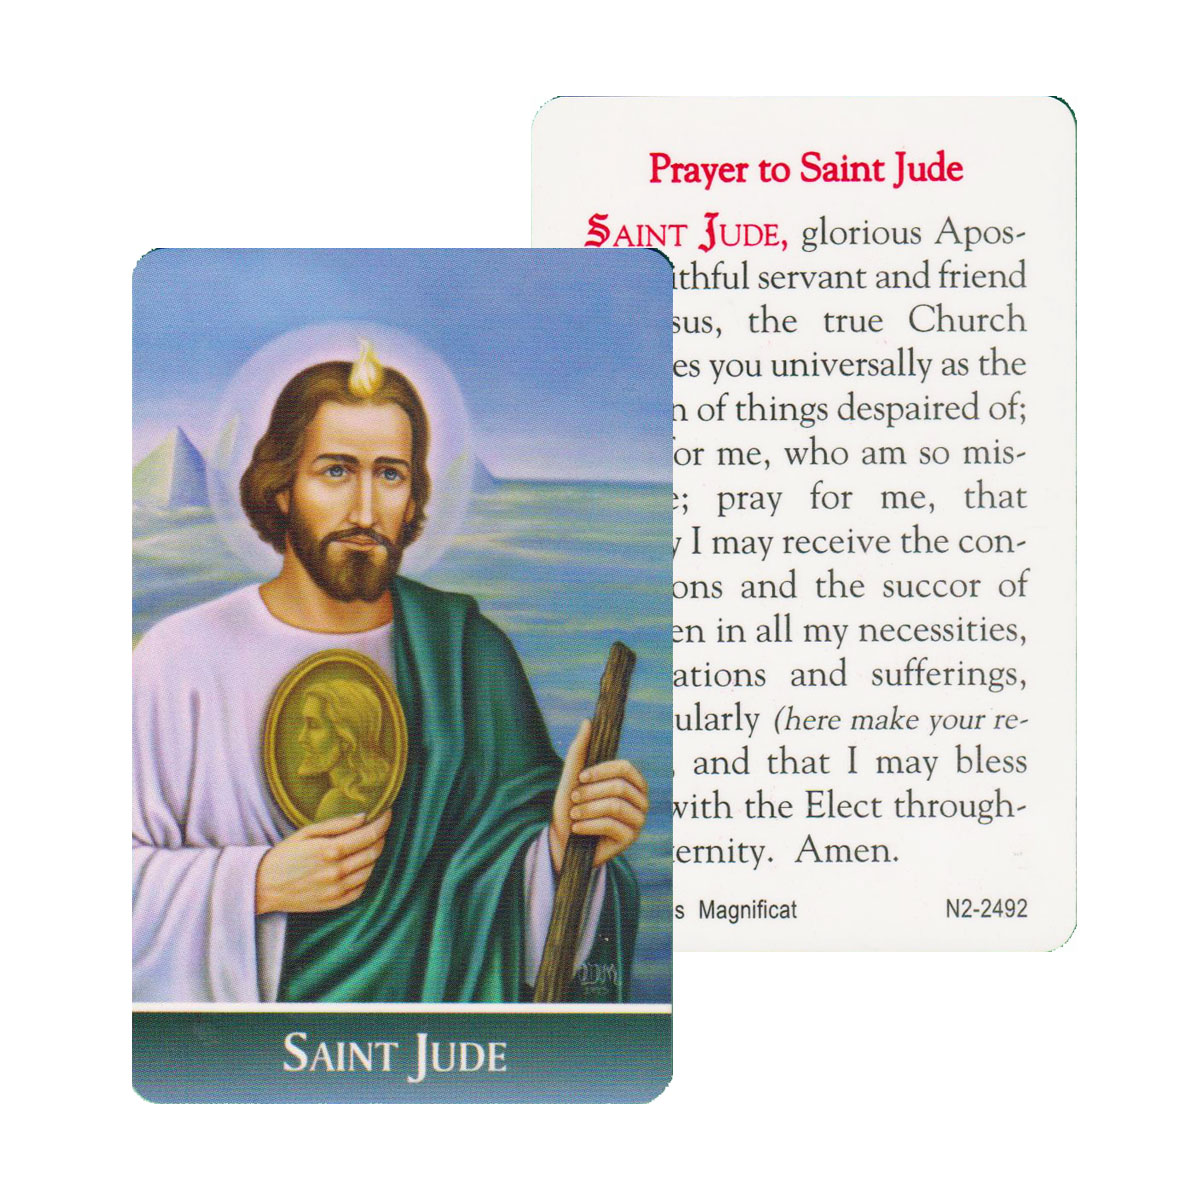 St Jude Prayer Card (CAR1-020)